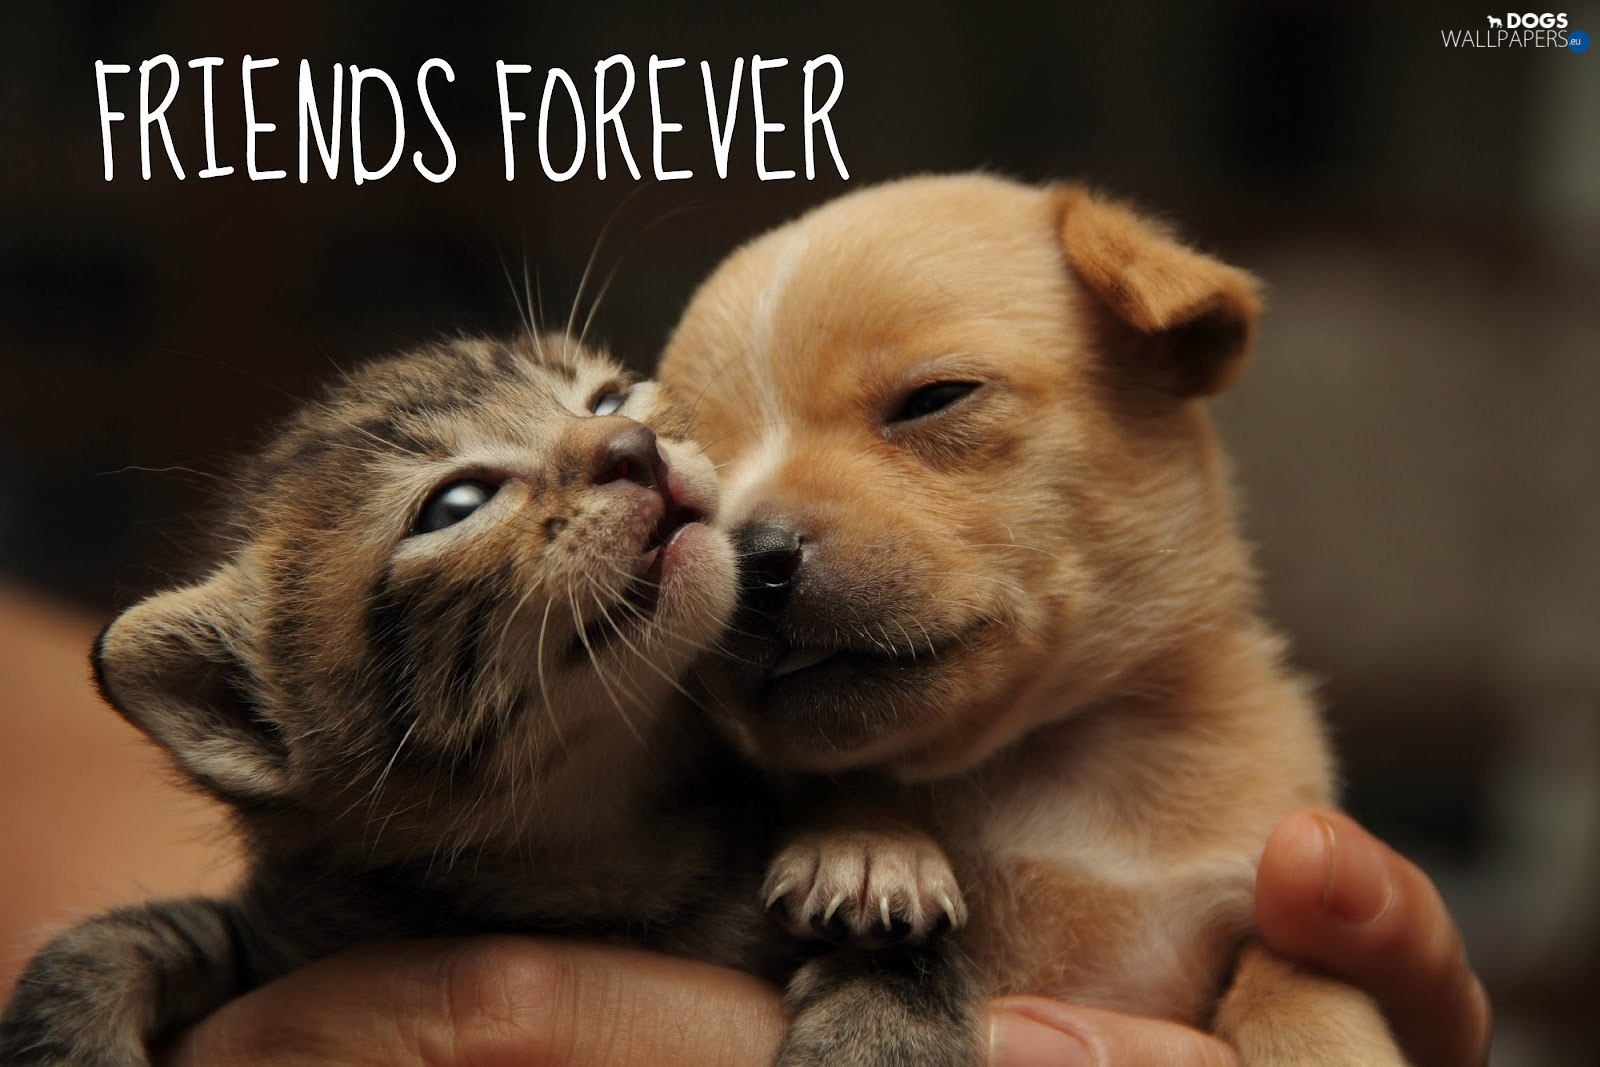 Kitten and Puppy Wallpaper Android Apps on Google Play